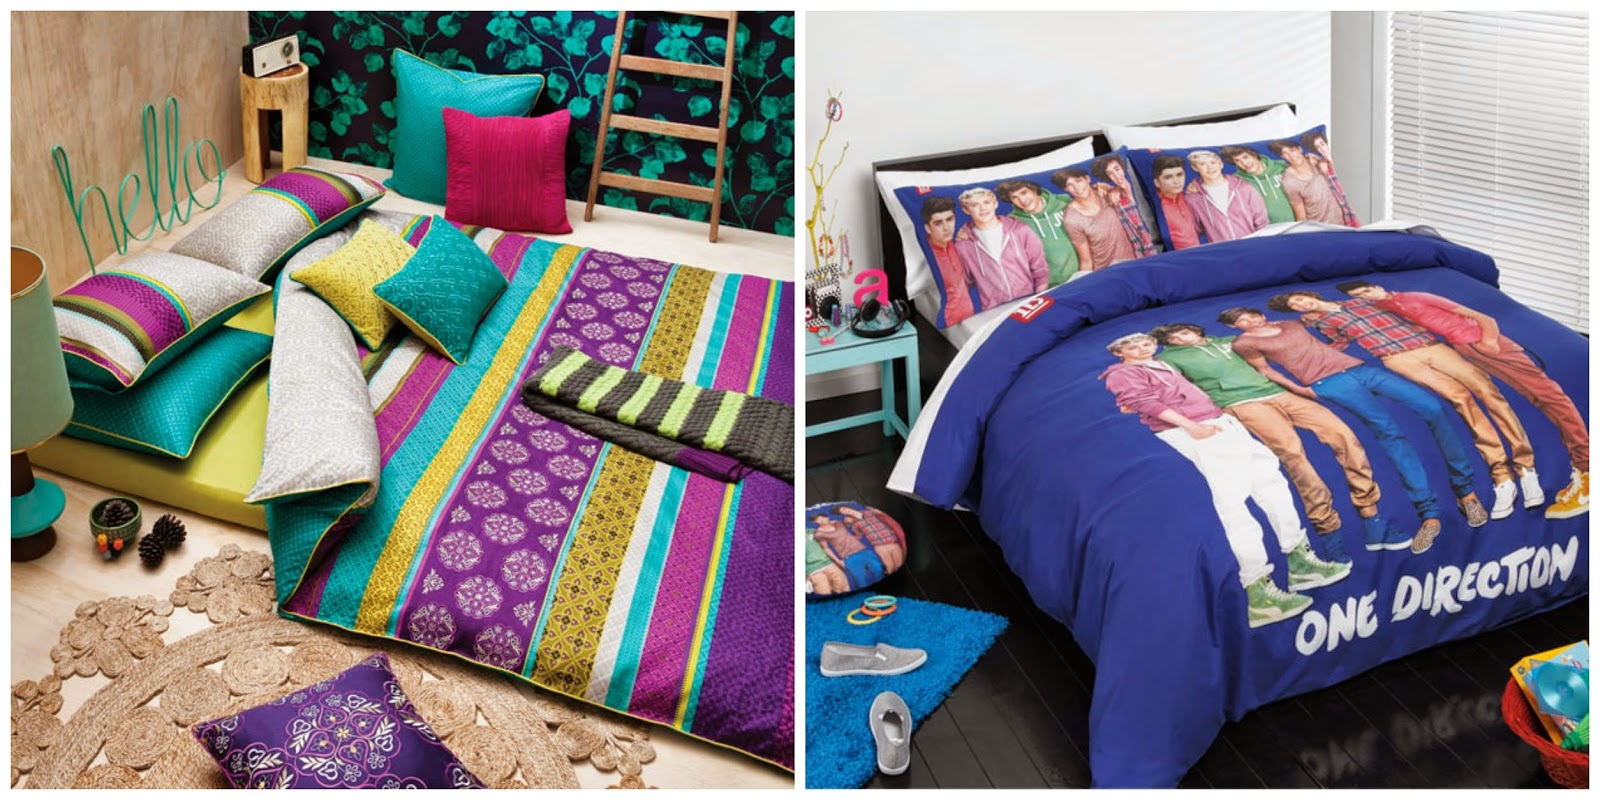 One Direction Bedroom Decor Mummy Hearts Money Bedroom Themes For Kids With Manchester Warehouse